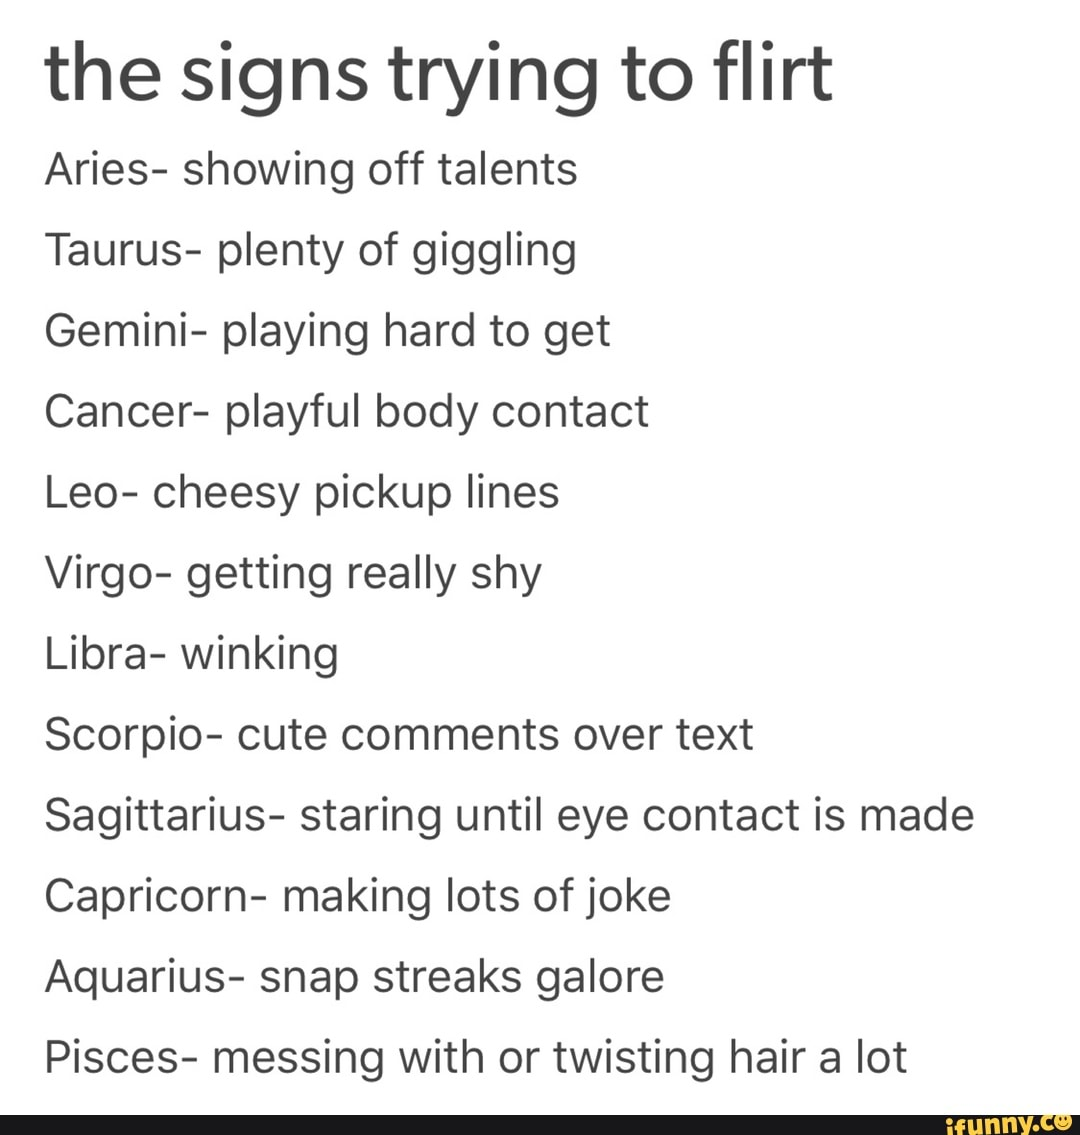 The signs trying to flirt Aries- showing off talents Taurus- plenty